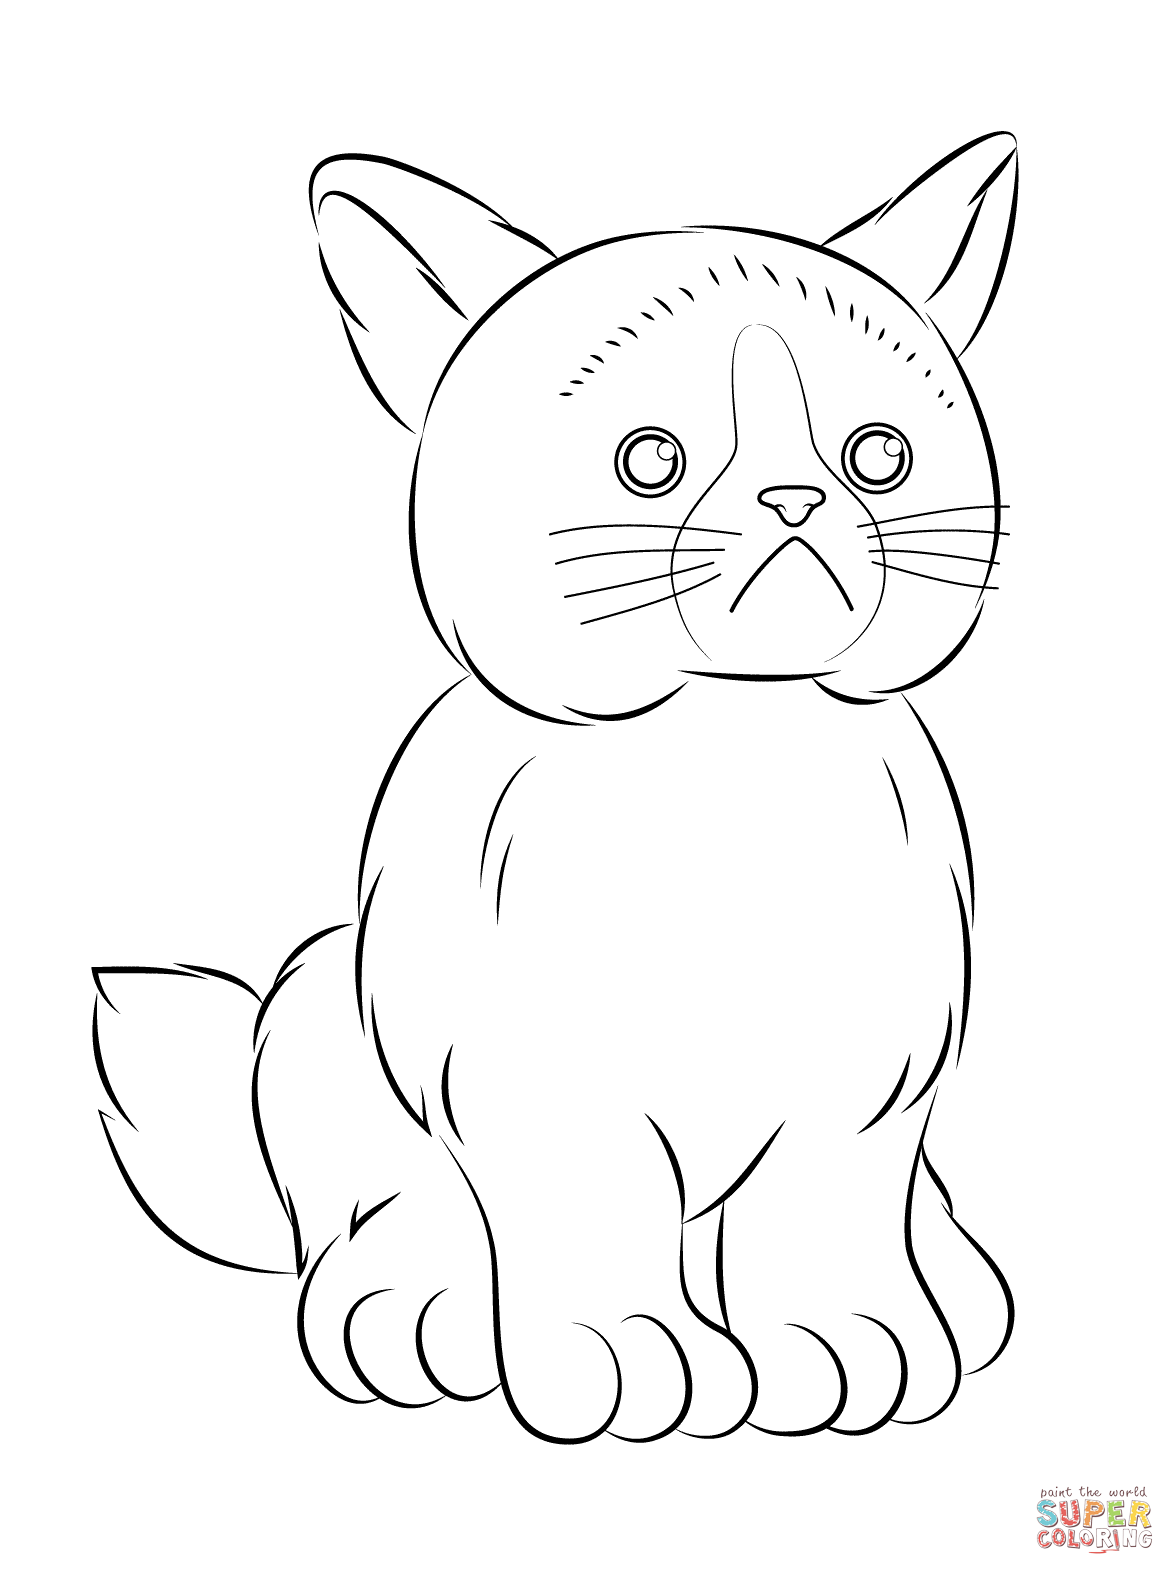 webkinz red panda coloring page free printable coloring pages